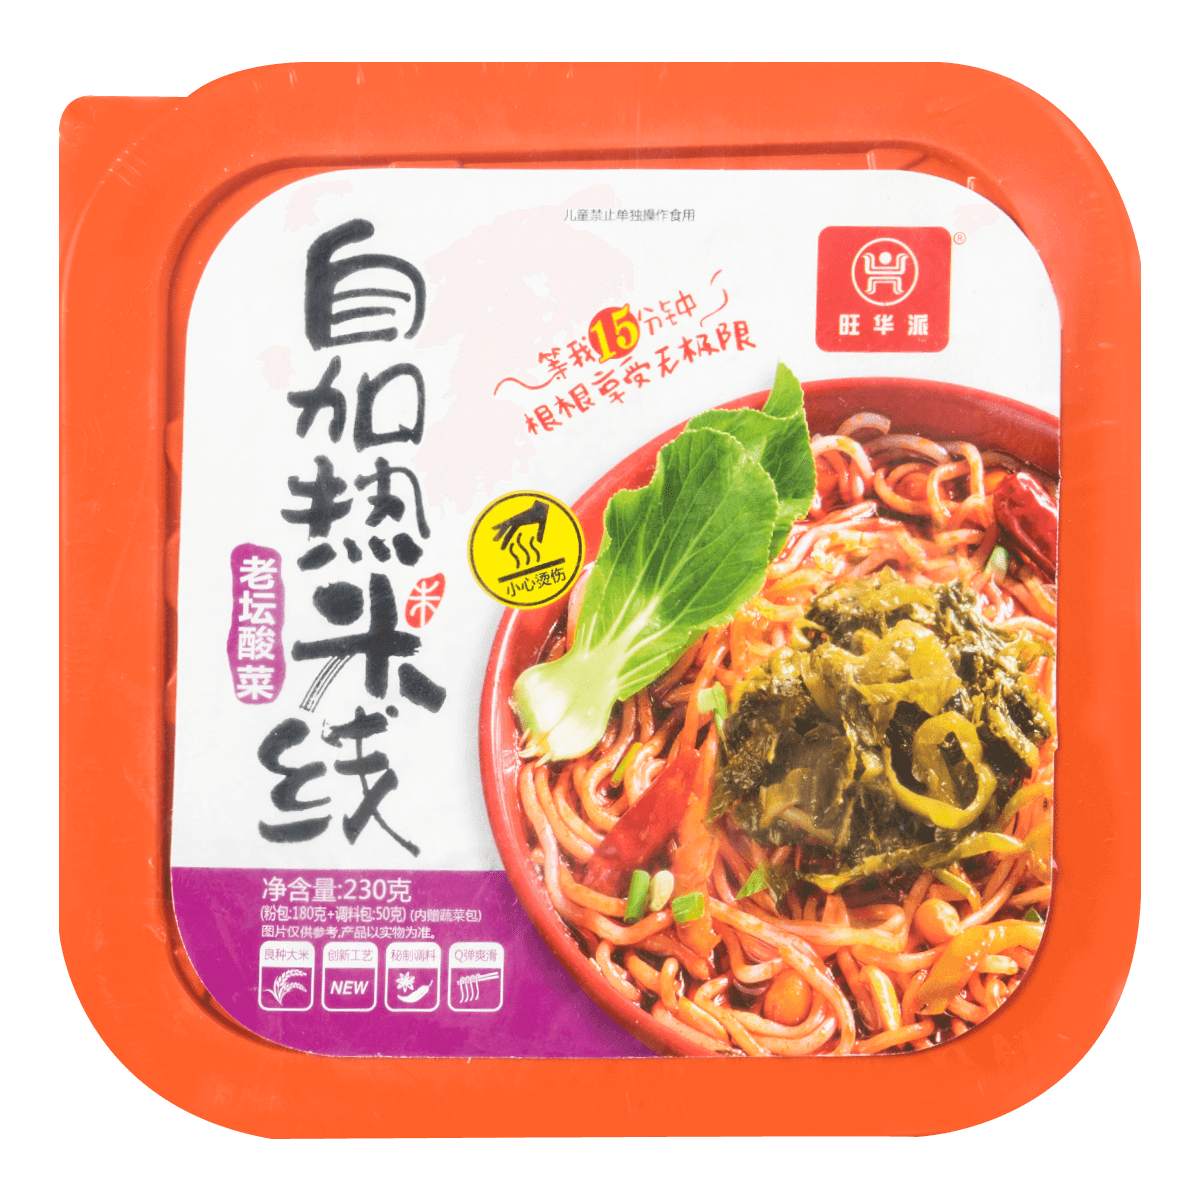 WANGHUAPAI Instant Rice Noodle-Sour Vegetable 230g